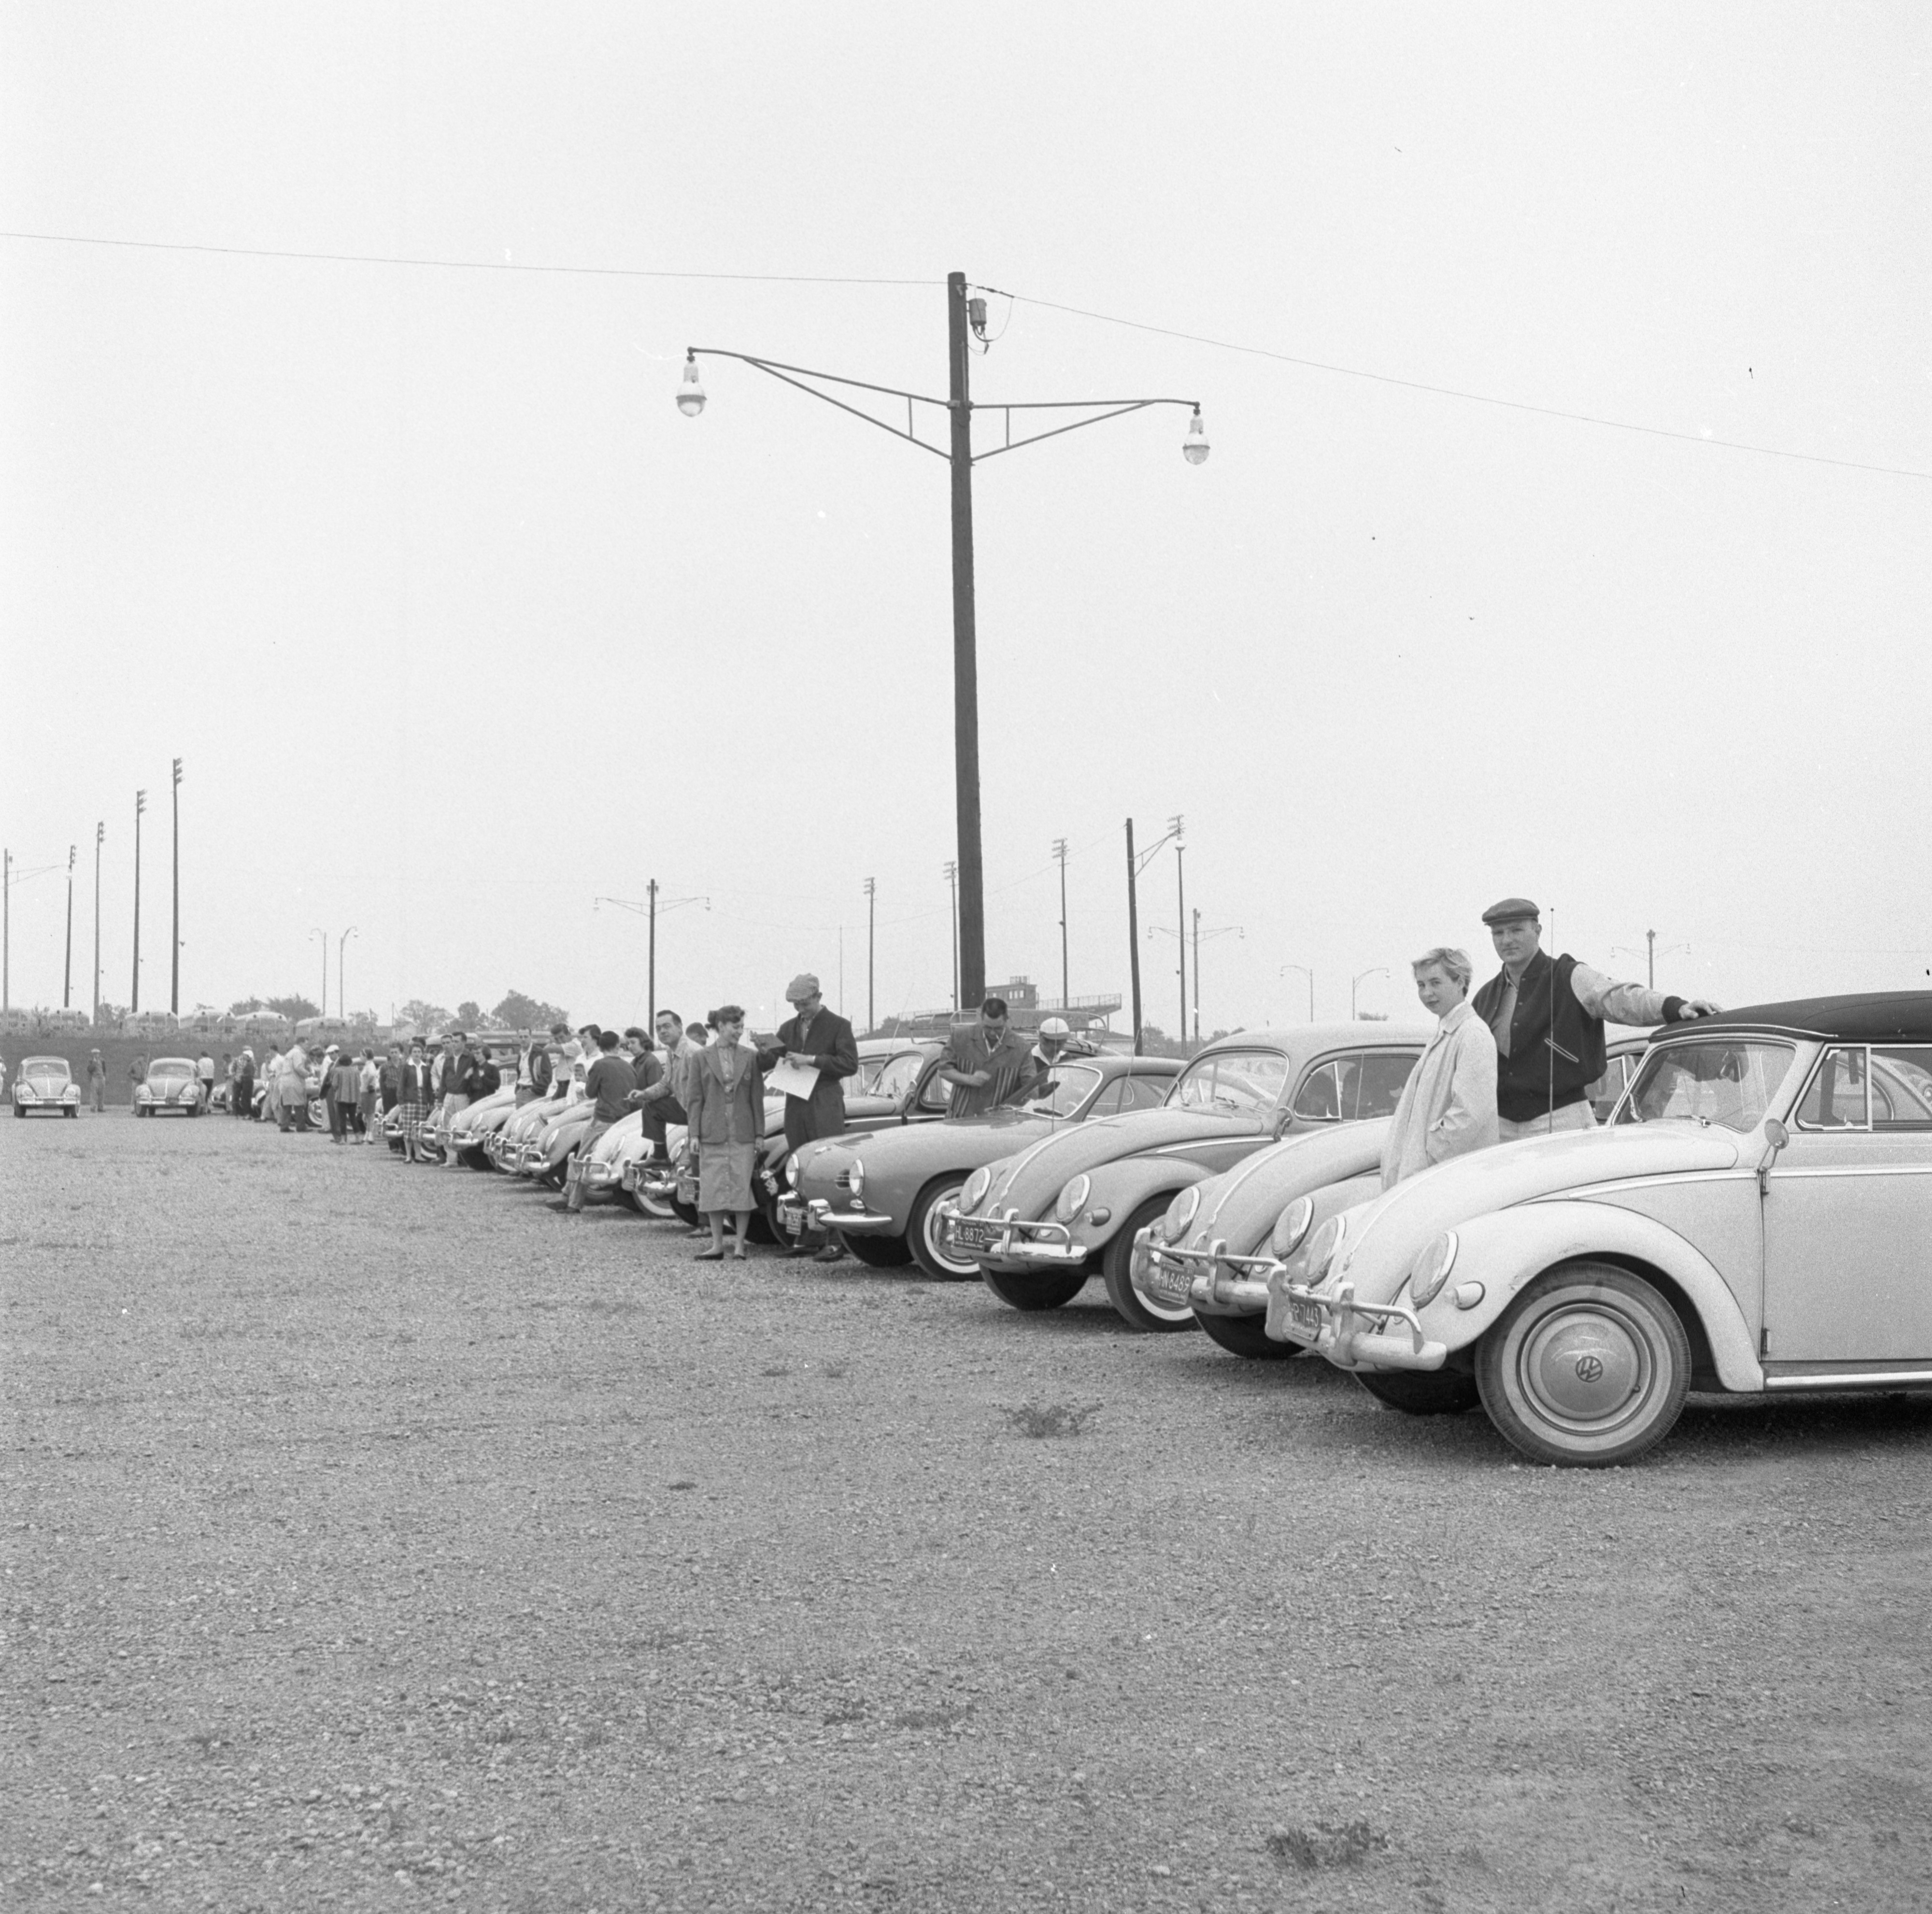 Cars & Drivers Wait In The Ann Arbor High School Lot For The Start Of A Foreign Car Road Rally, June 1957 image